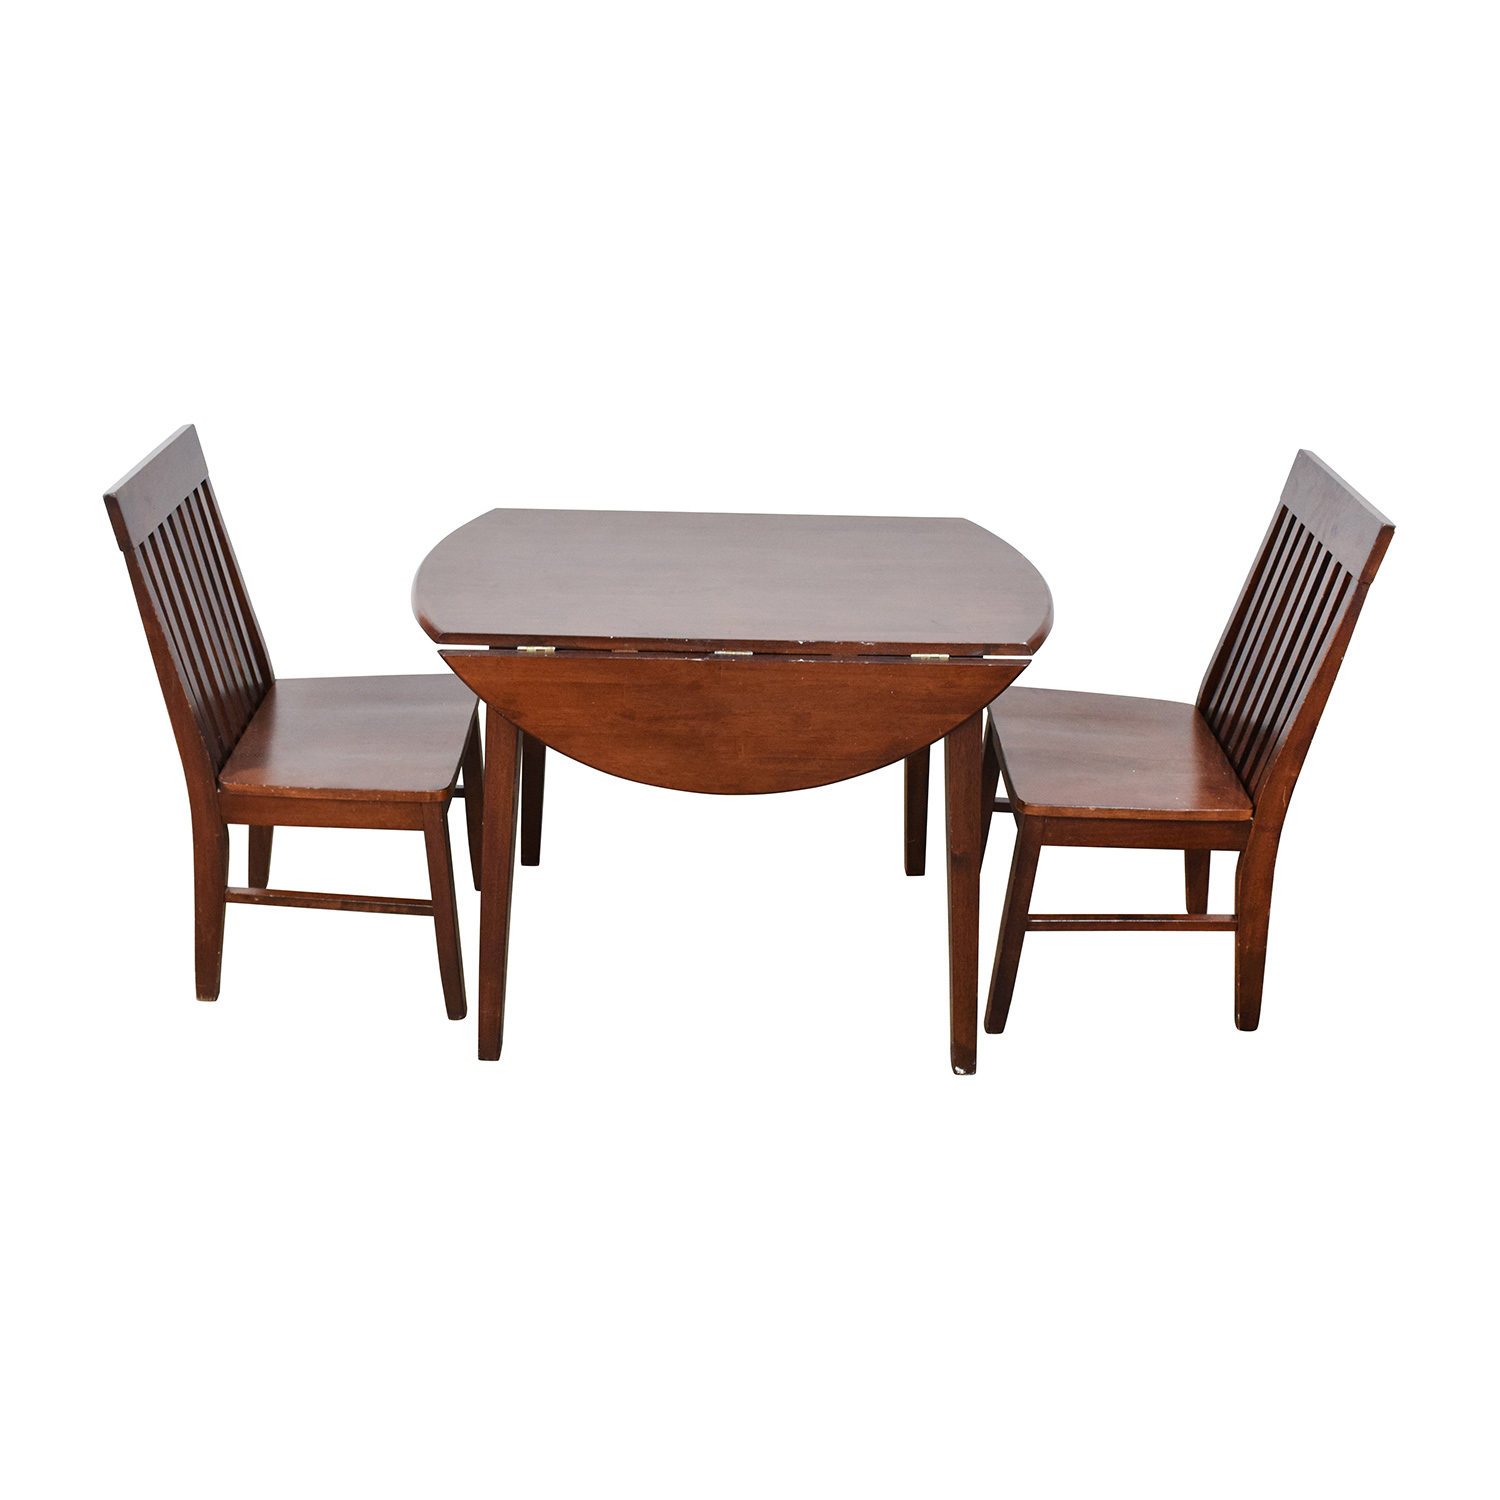 Round Dining Table with Folding Sides and Chairs price